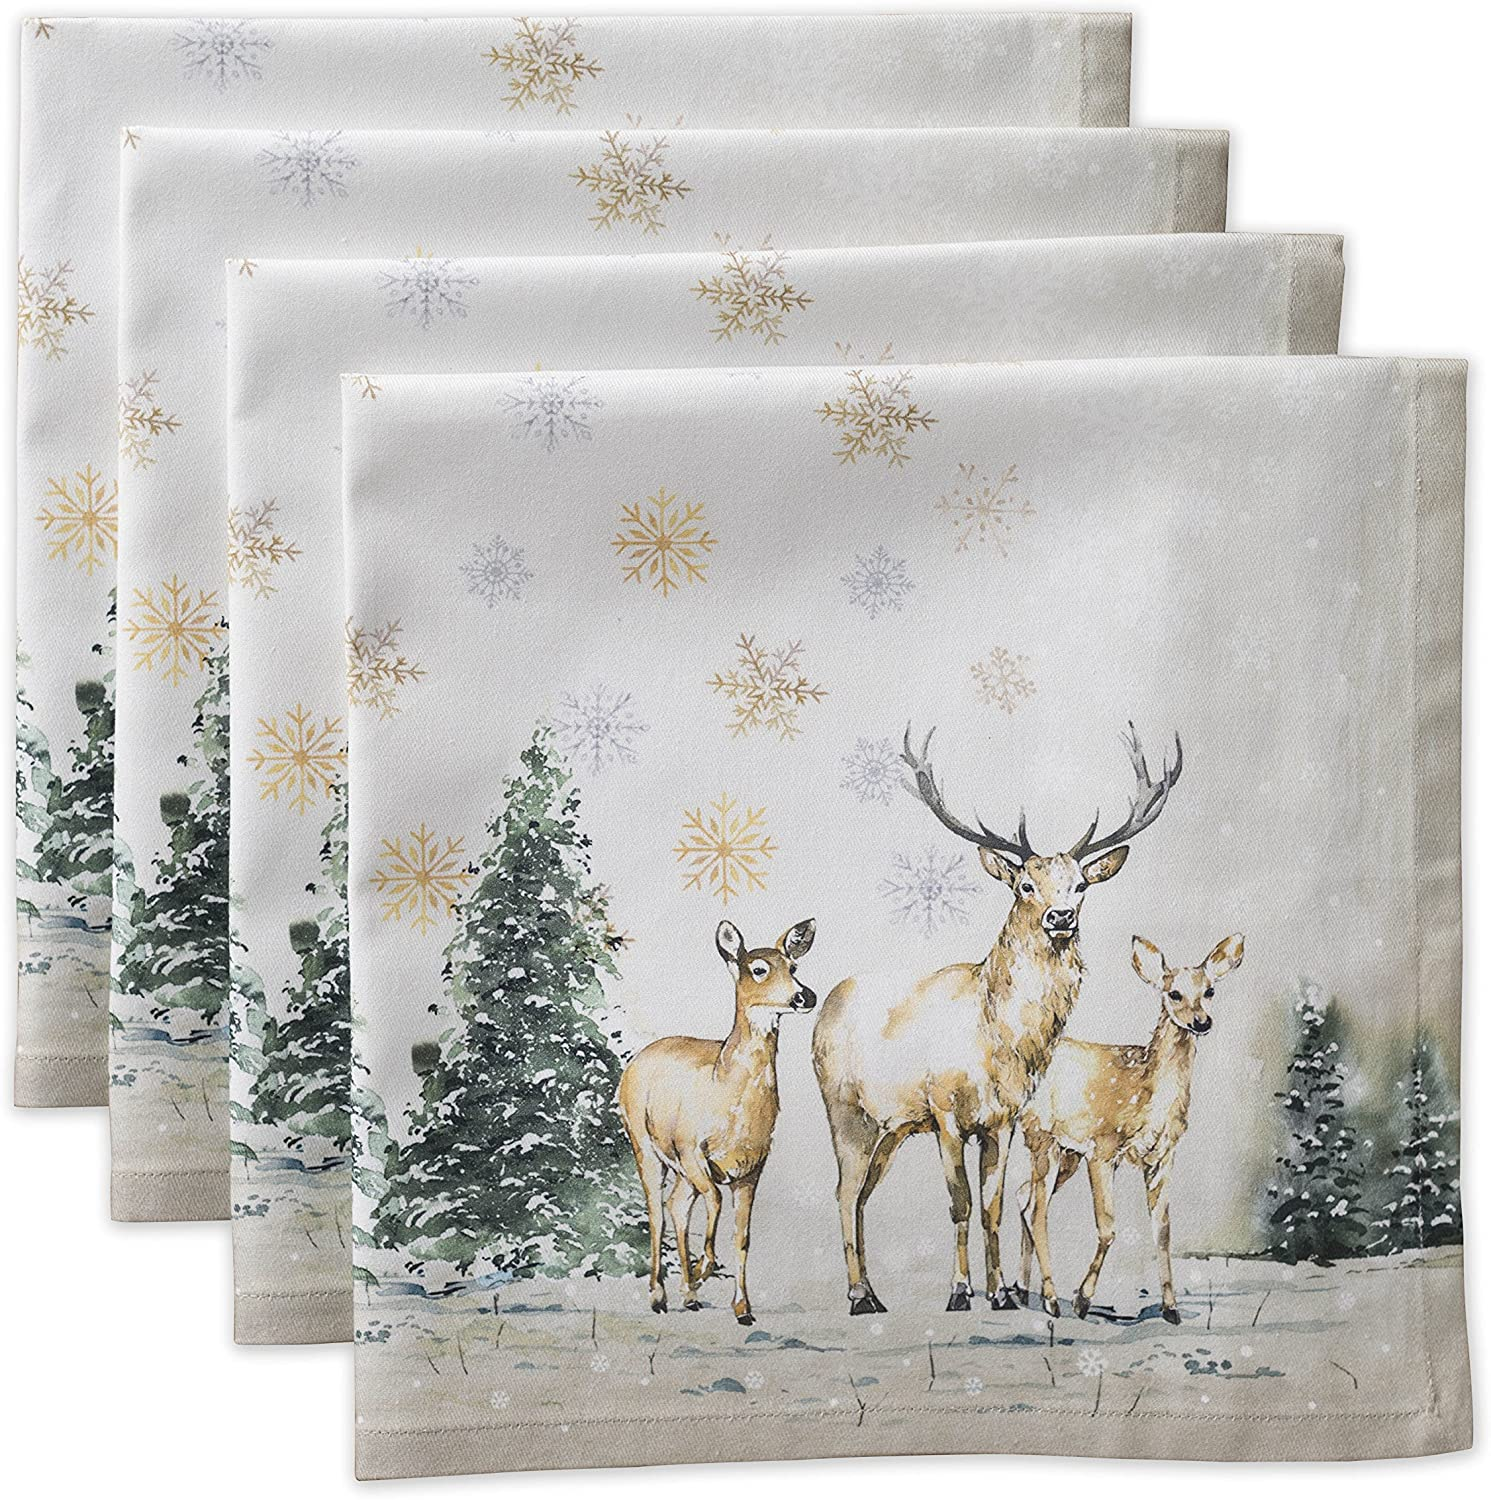 Maison d' Hermine Deer in The Woods 100% Cotton Soft and Comfortable Set of 4 Napkins Perfect for Family Dinners | Weddings | Cocktail | Kitchen | Thanksgiving/Christmas (20 Inch by 20 Inch).